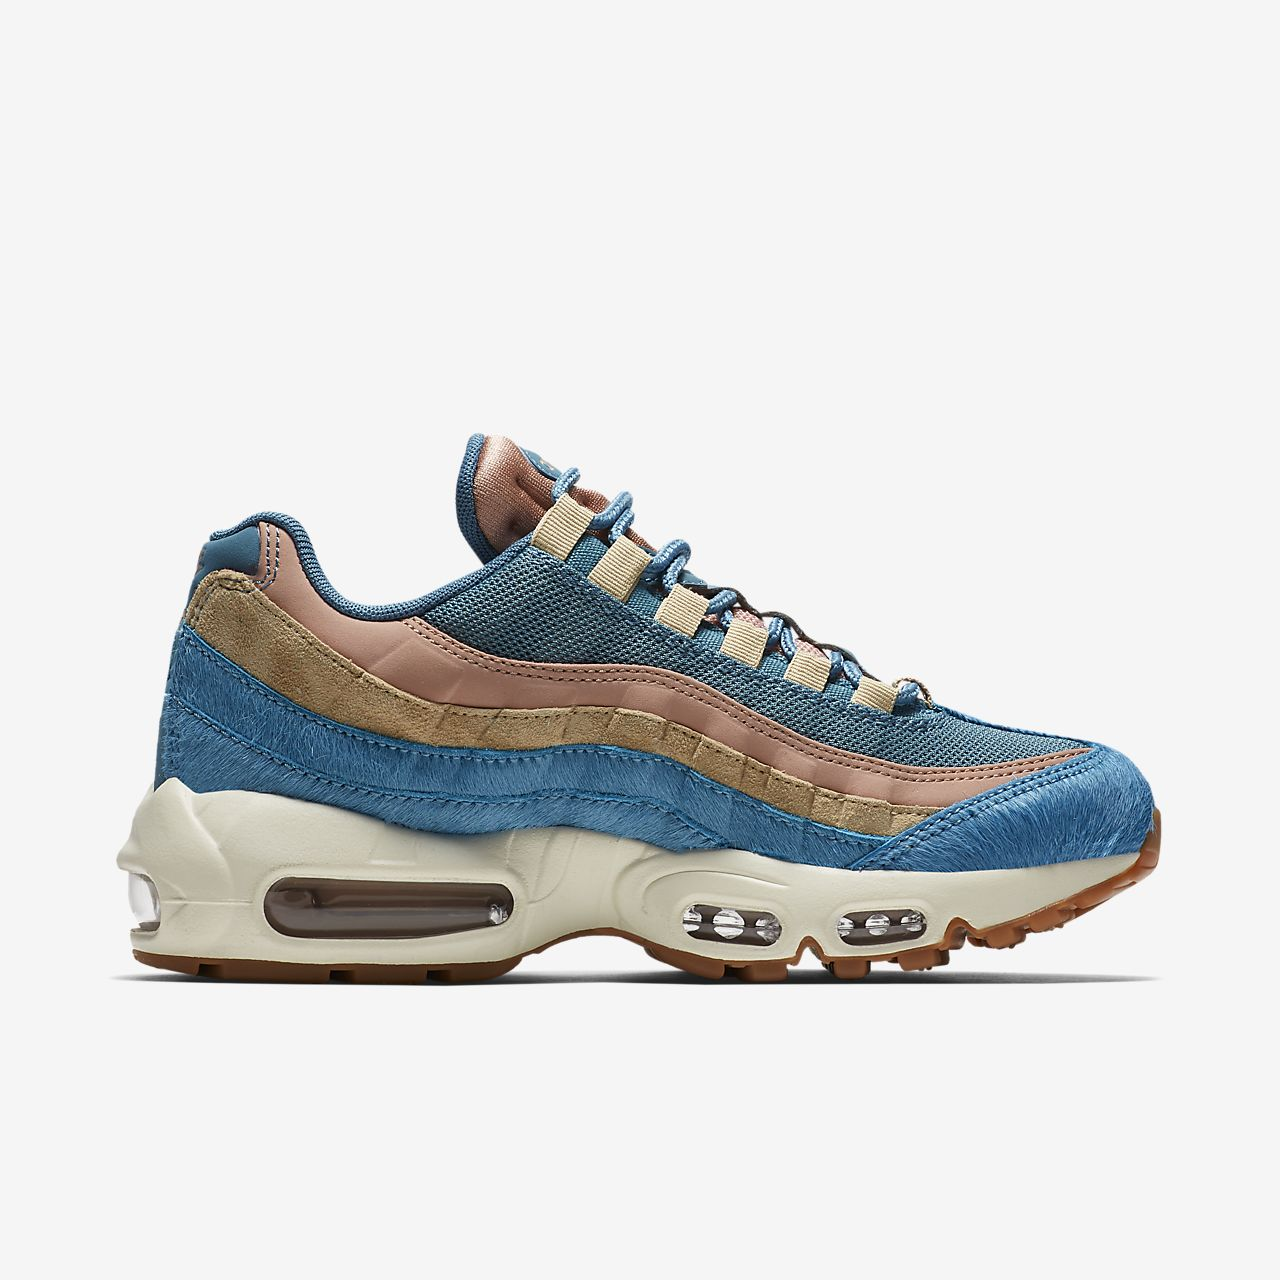 adb5ab76cd8505 women nike air max 95 shoes Choose from an assortment of women s ...